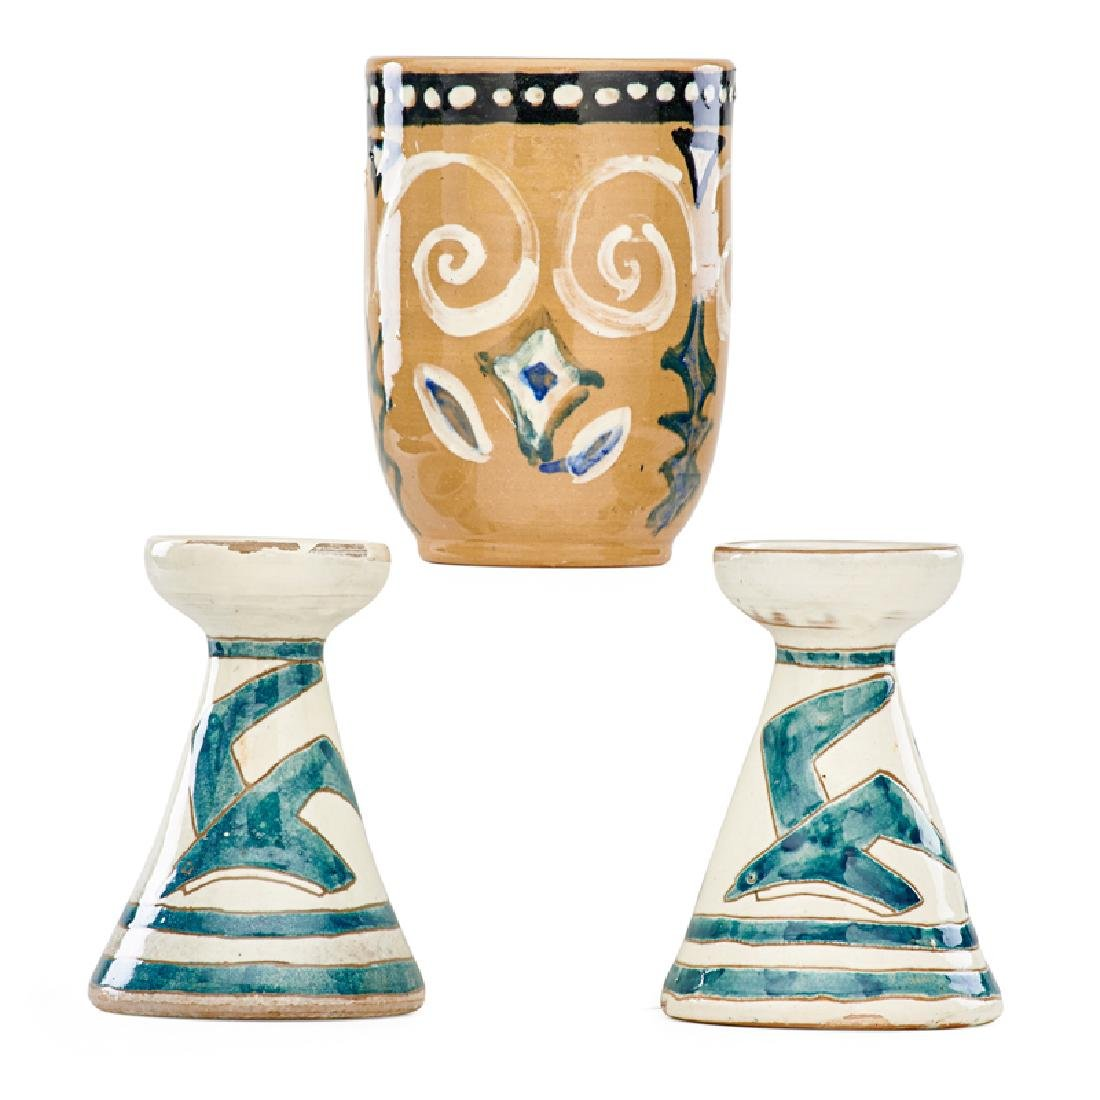 SHEARWATER Vase and two candlesticks